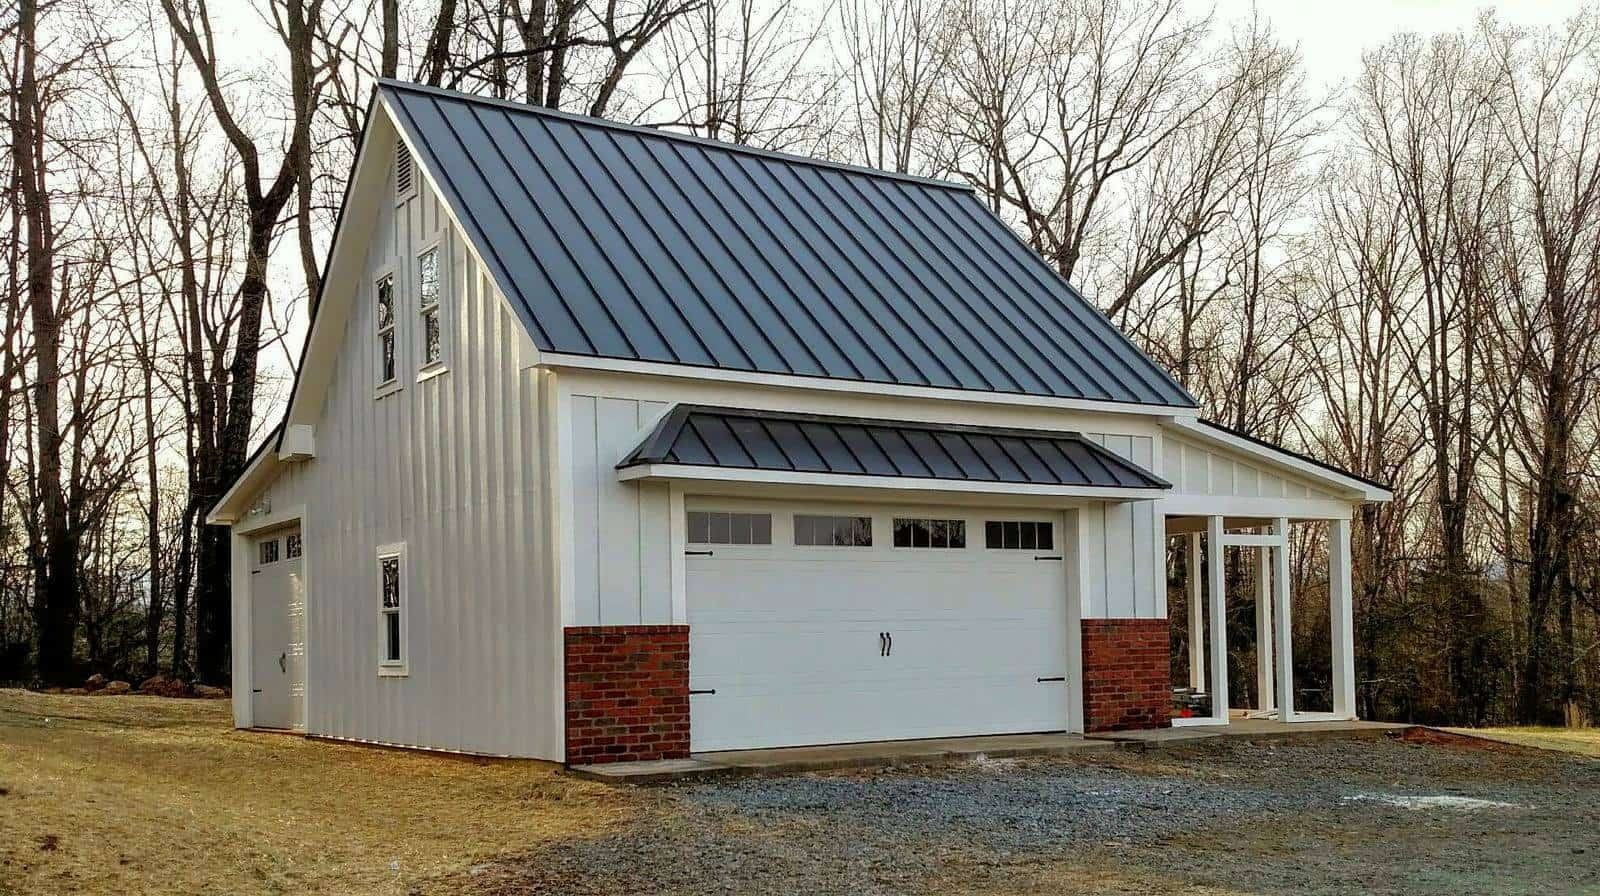 Cost to build a house in virginia home design ideas for Have a house built cost